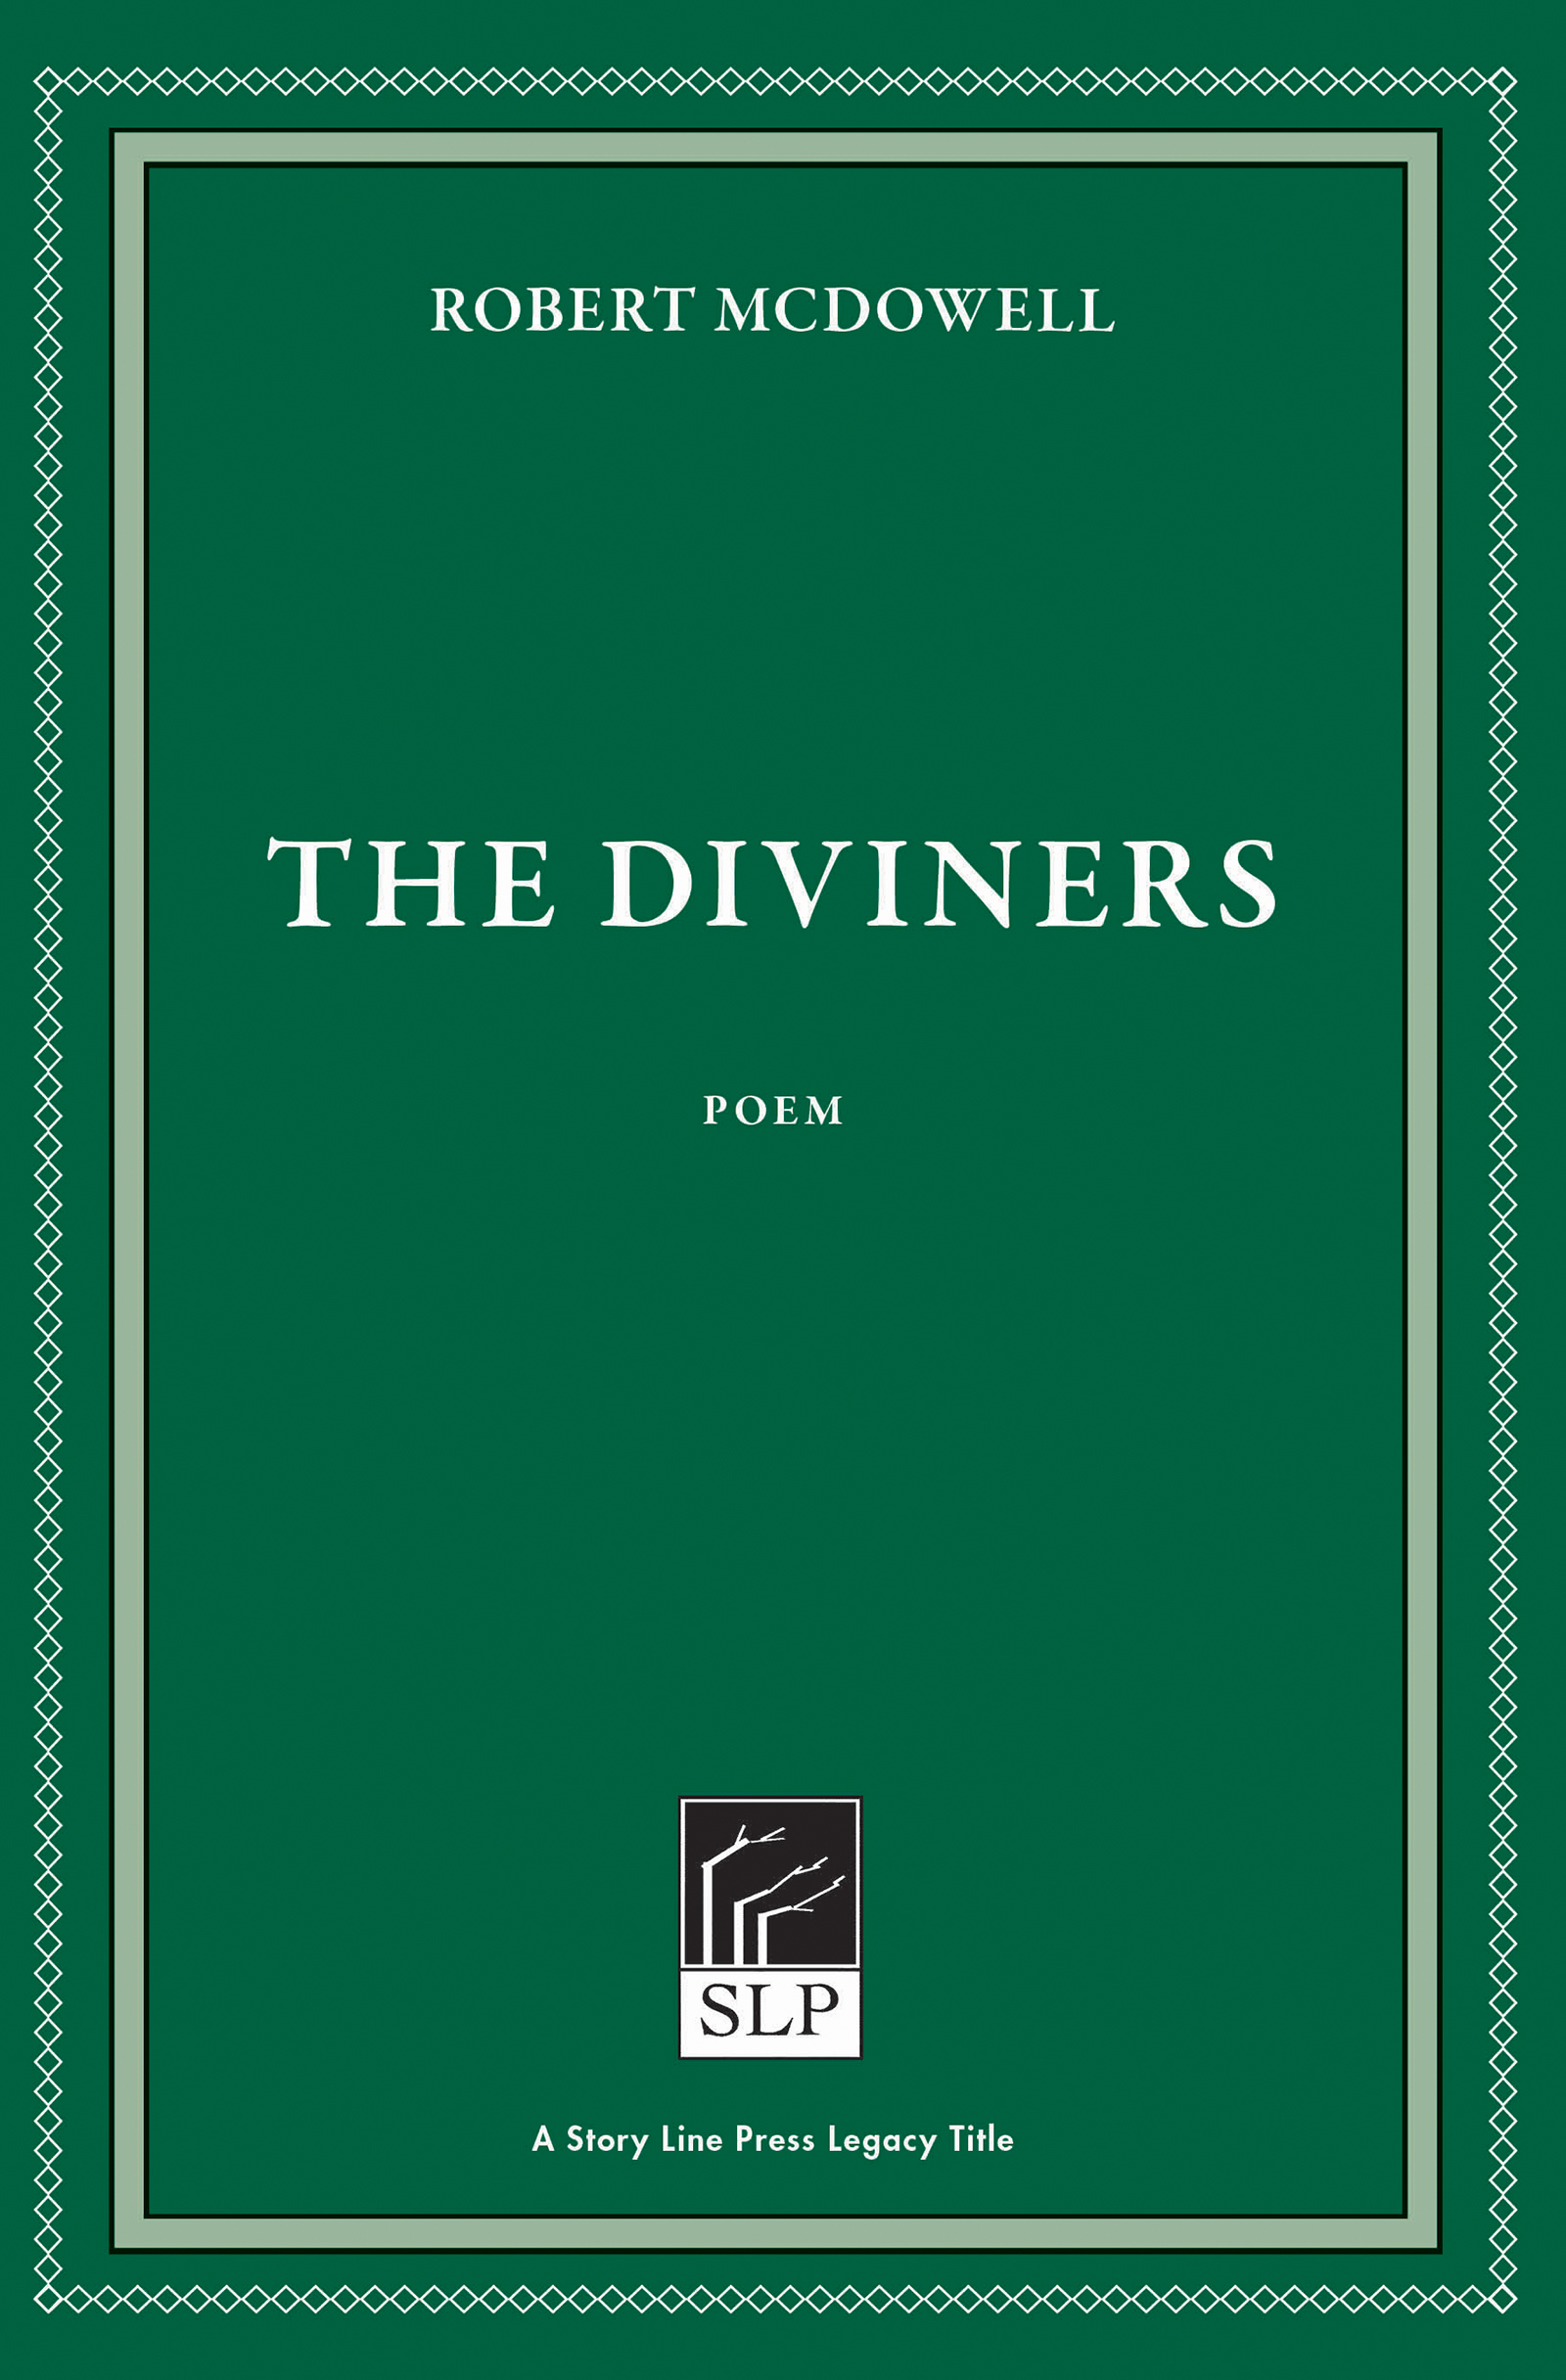 Story Line Press legacy tittle, Robert McDowell The Diviners Poem, white script text against emerald green background.